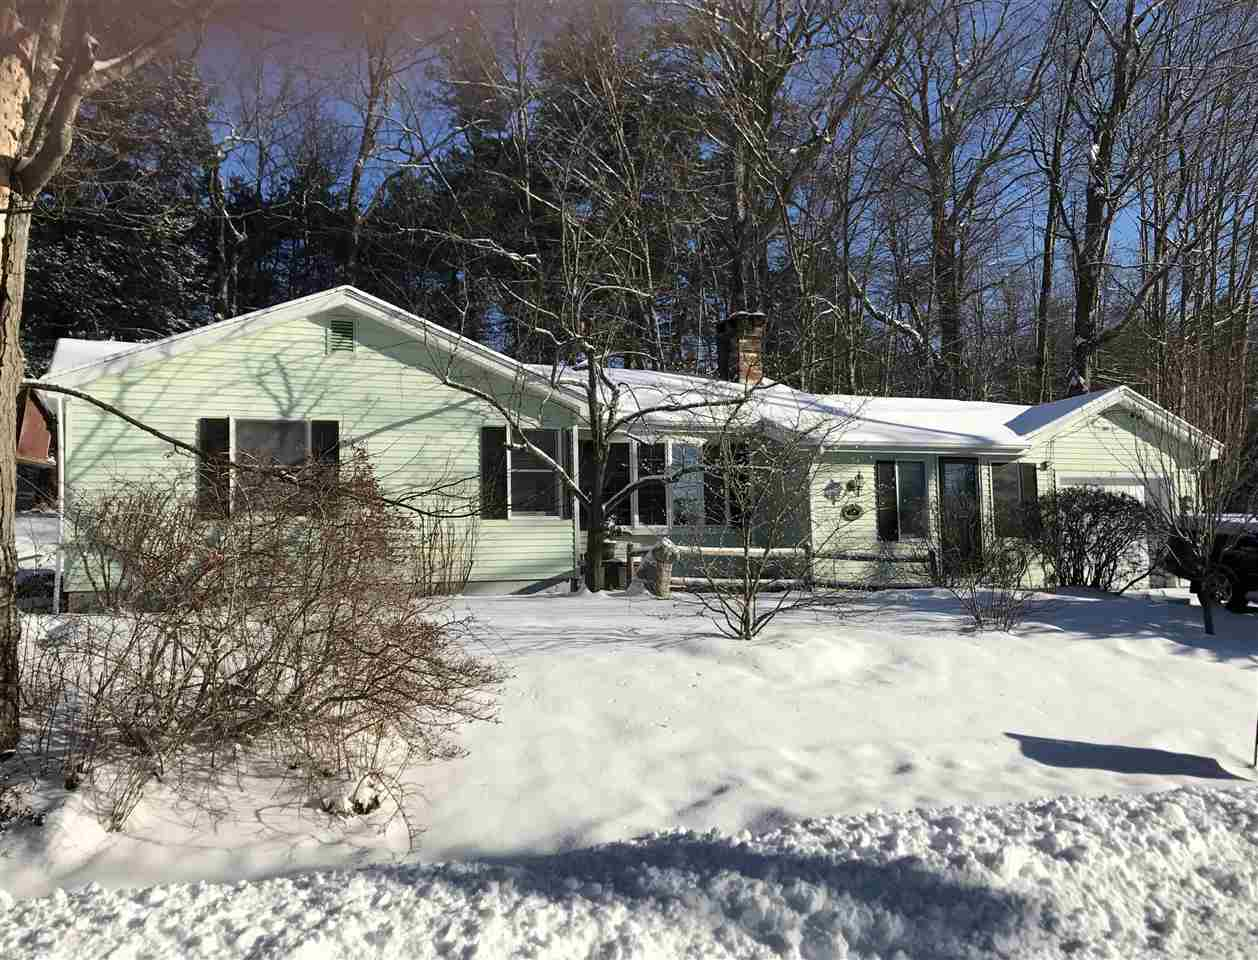 MLS 4690907: 32 Gilmore Pond Road, Jaffrey NH